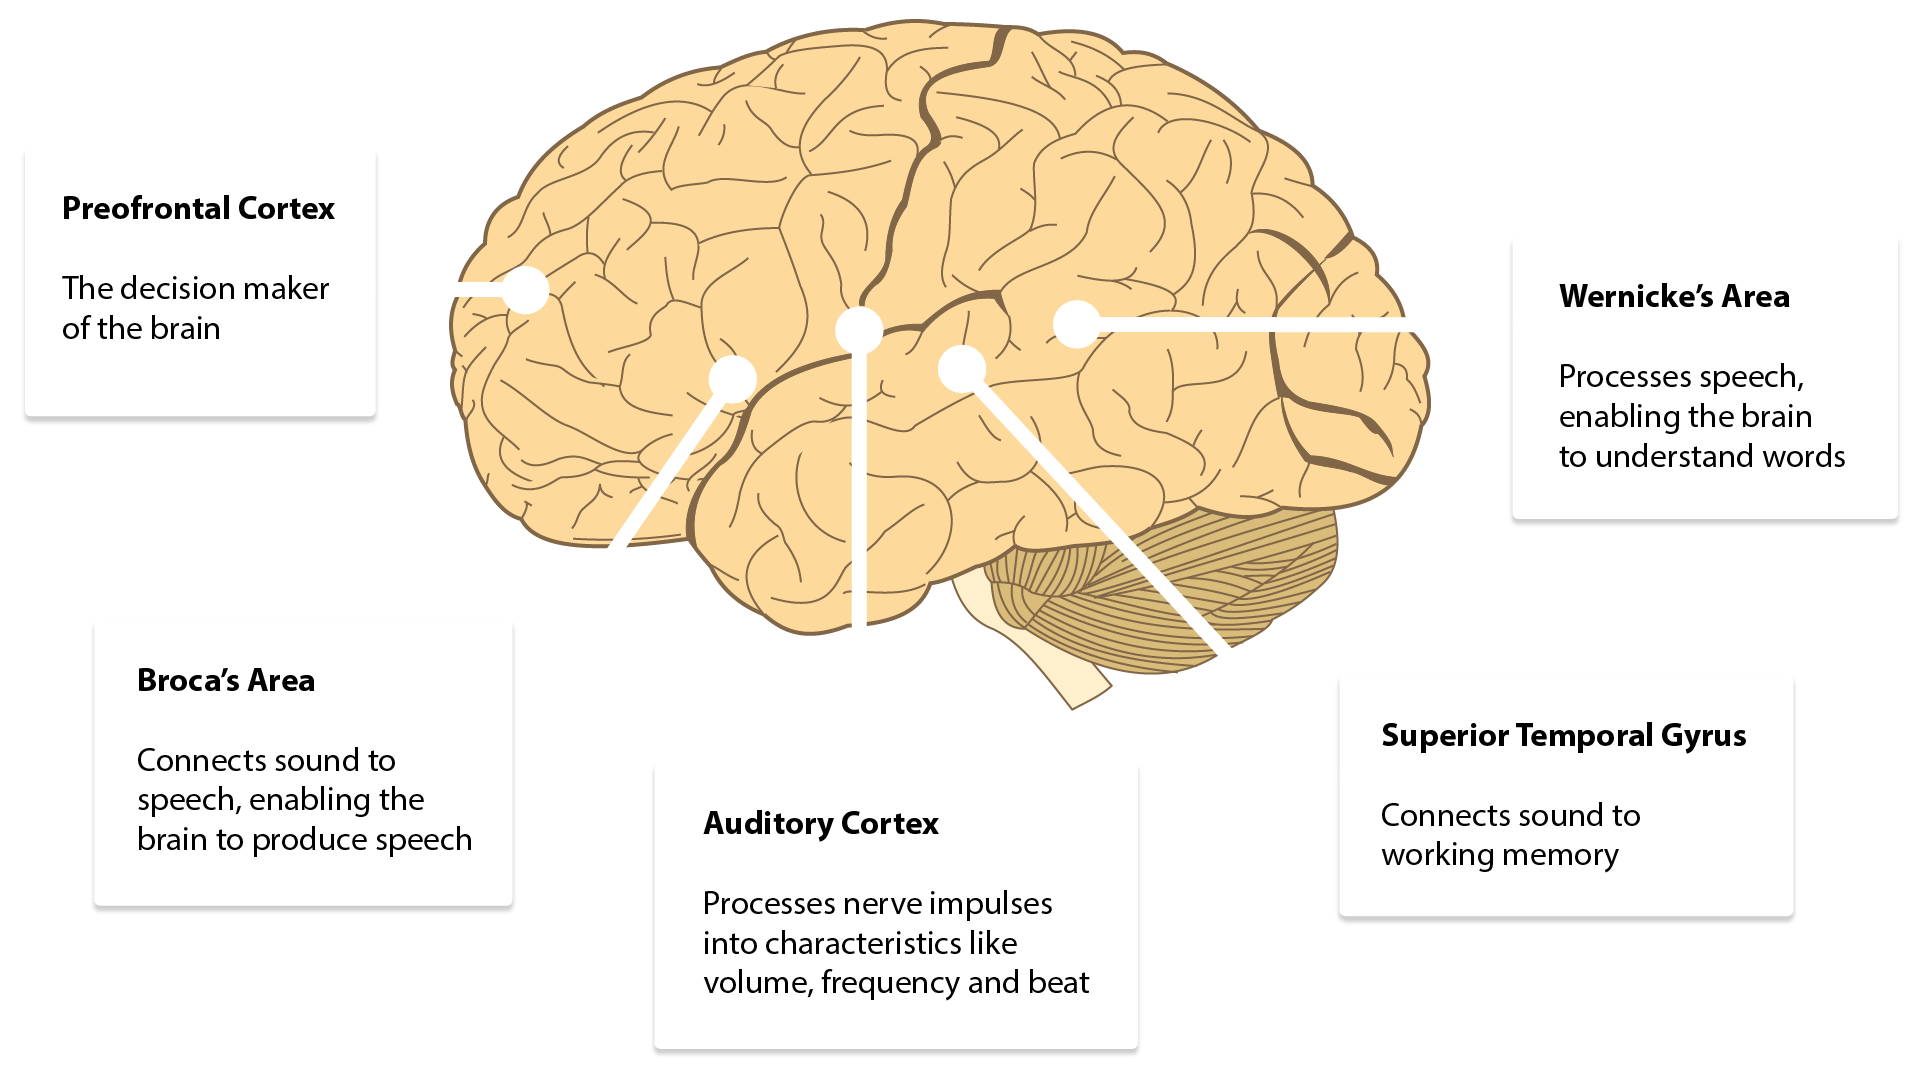 Areas of the brain that respond to sound